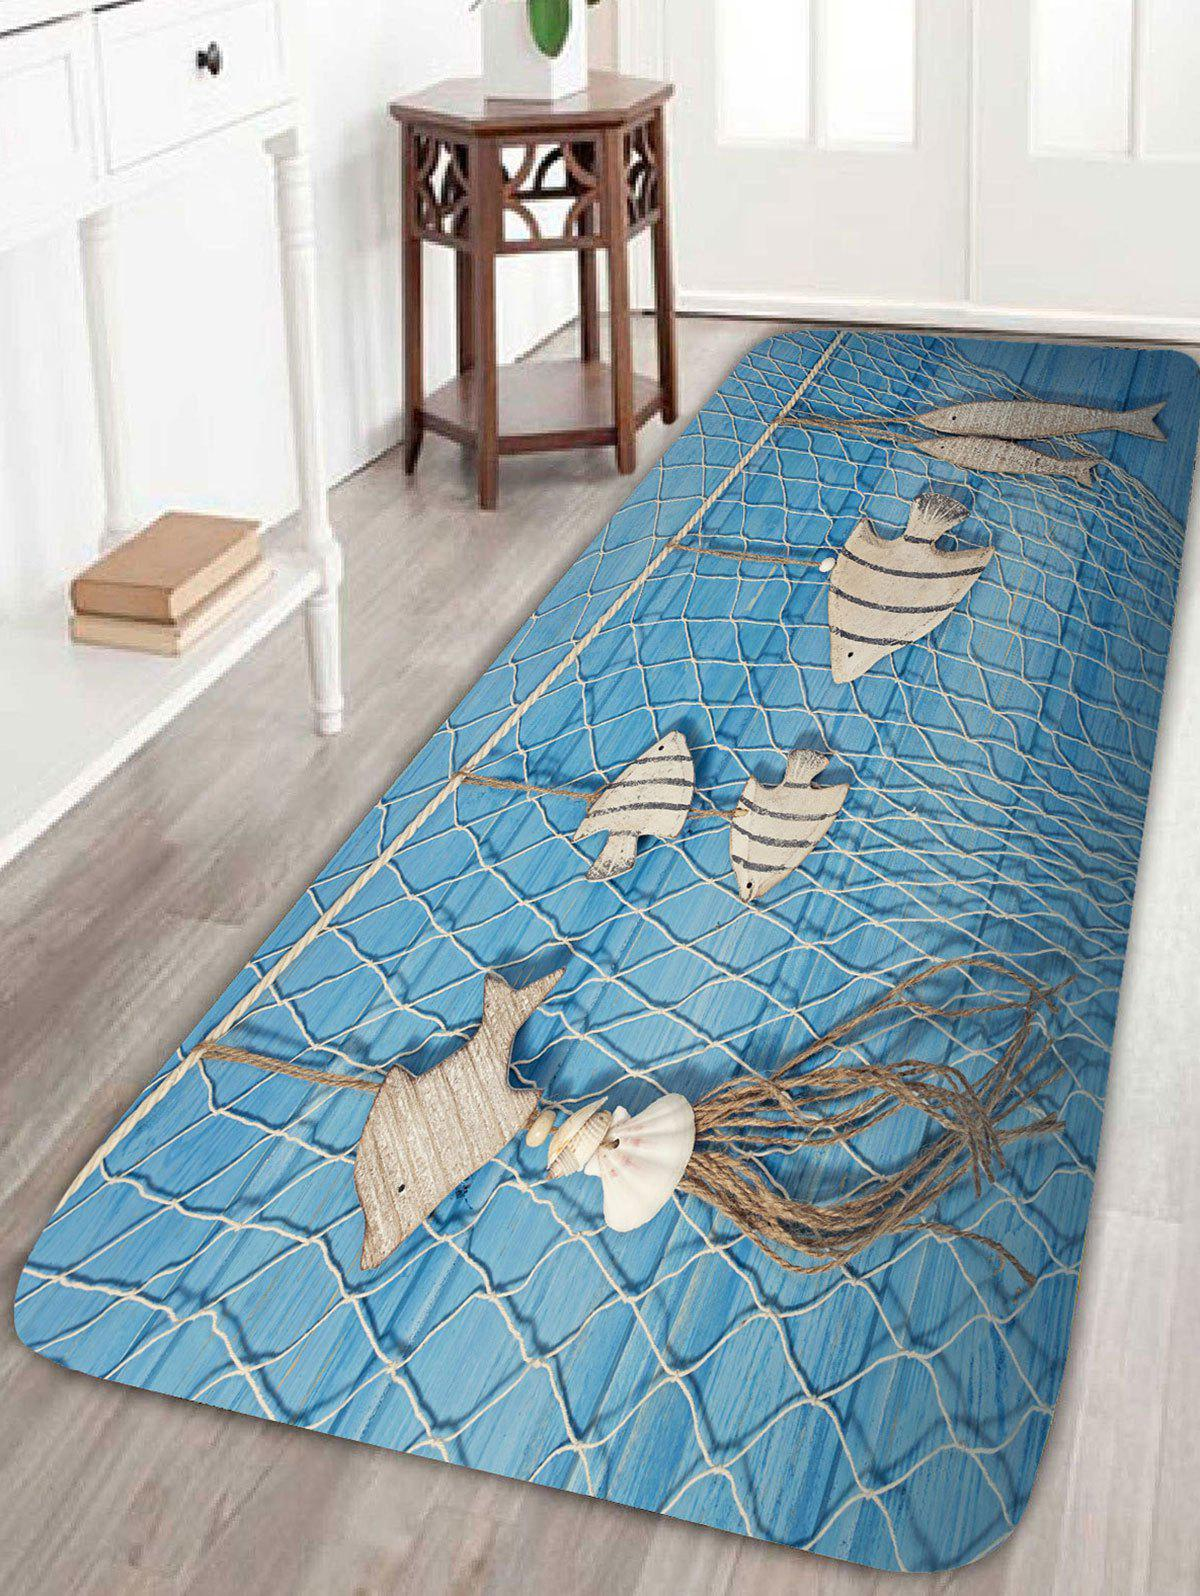 Wood Fish Fishing Net Print Bath Rug - LIGHT BLUE W16 INCH * L47 INCH